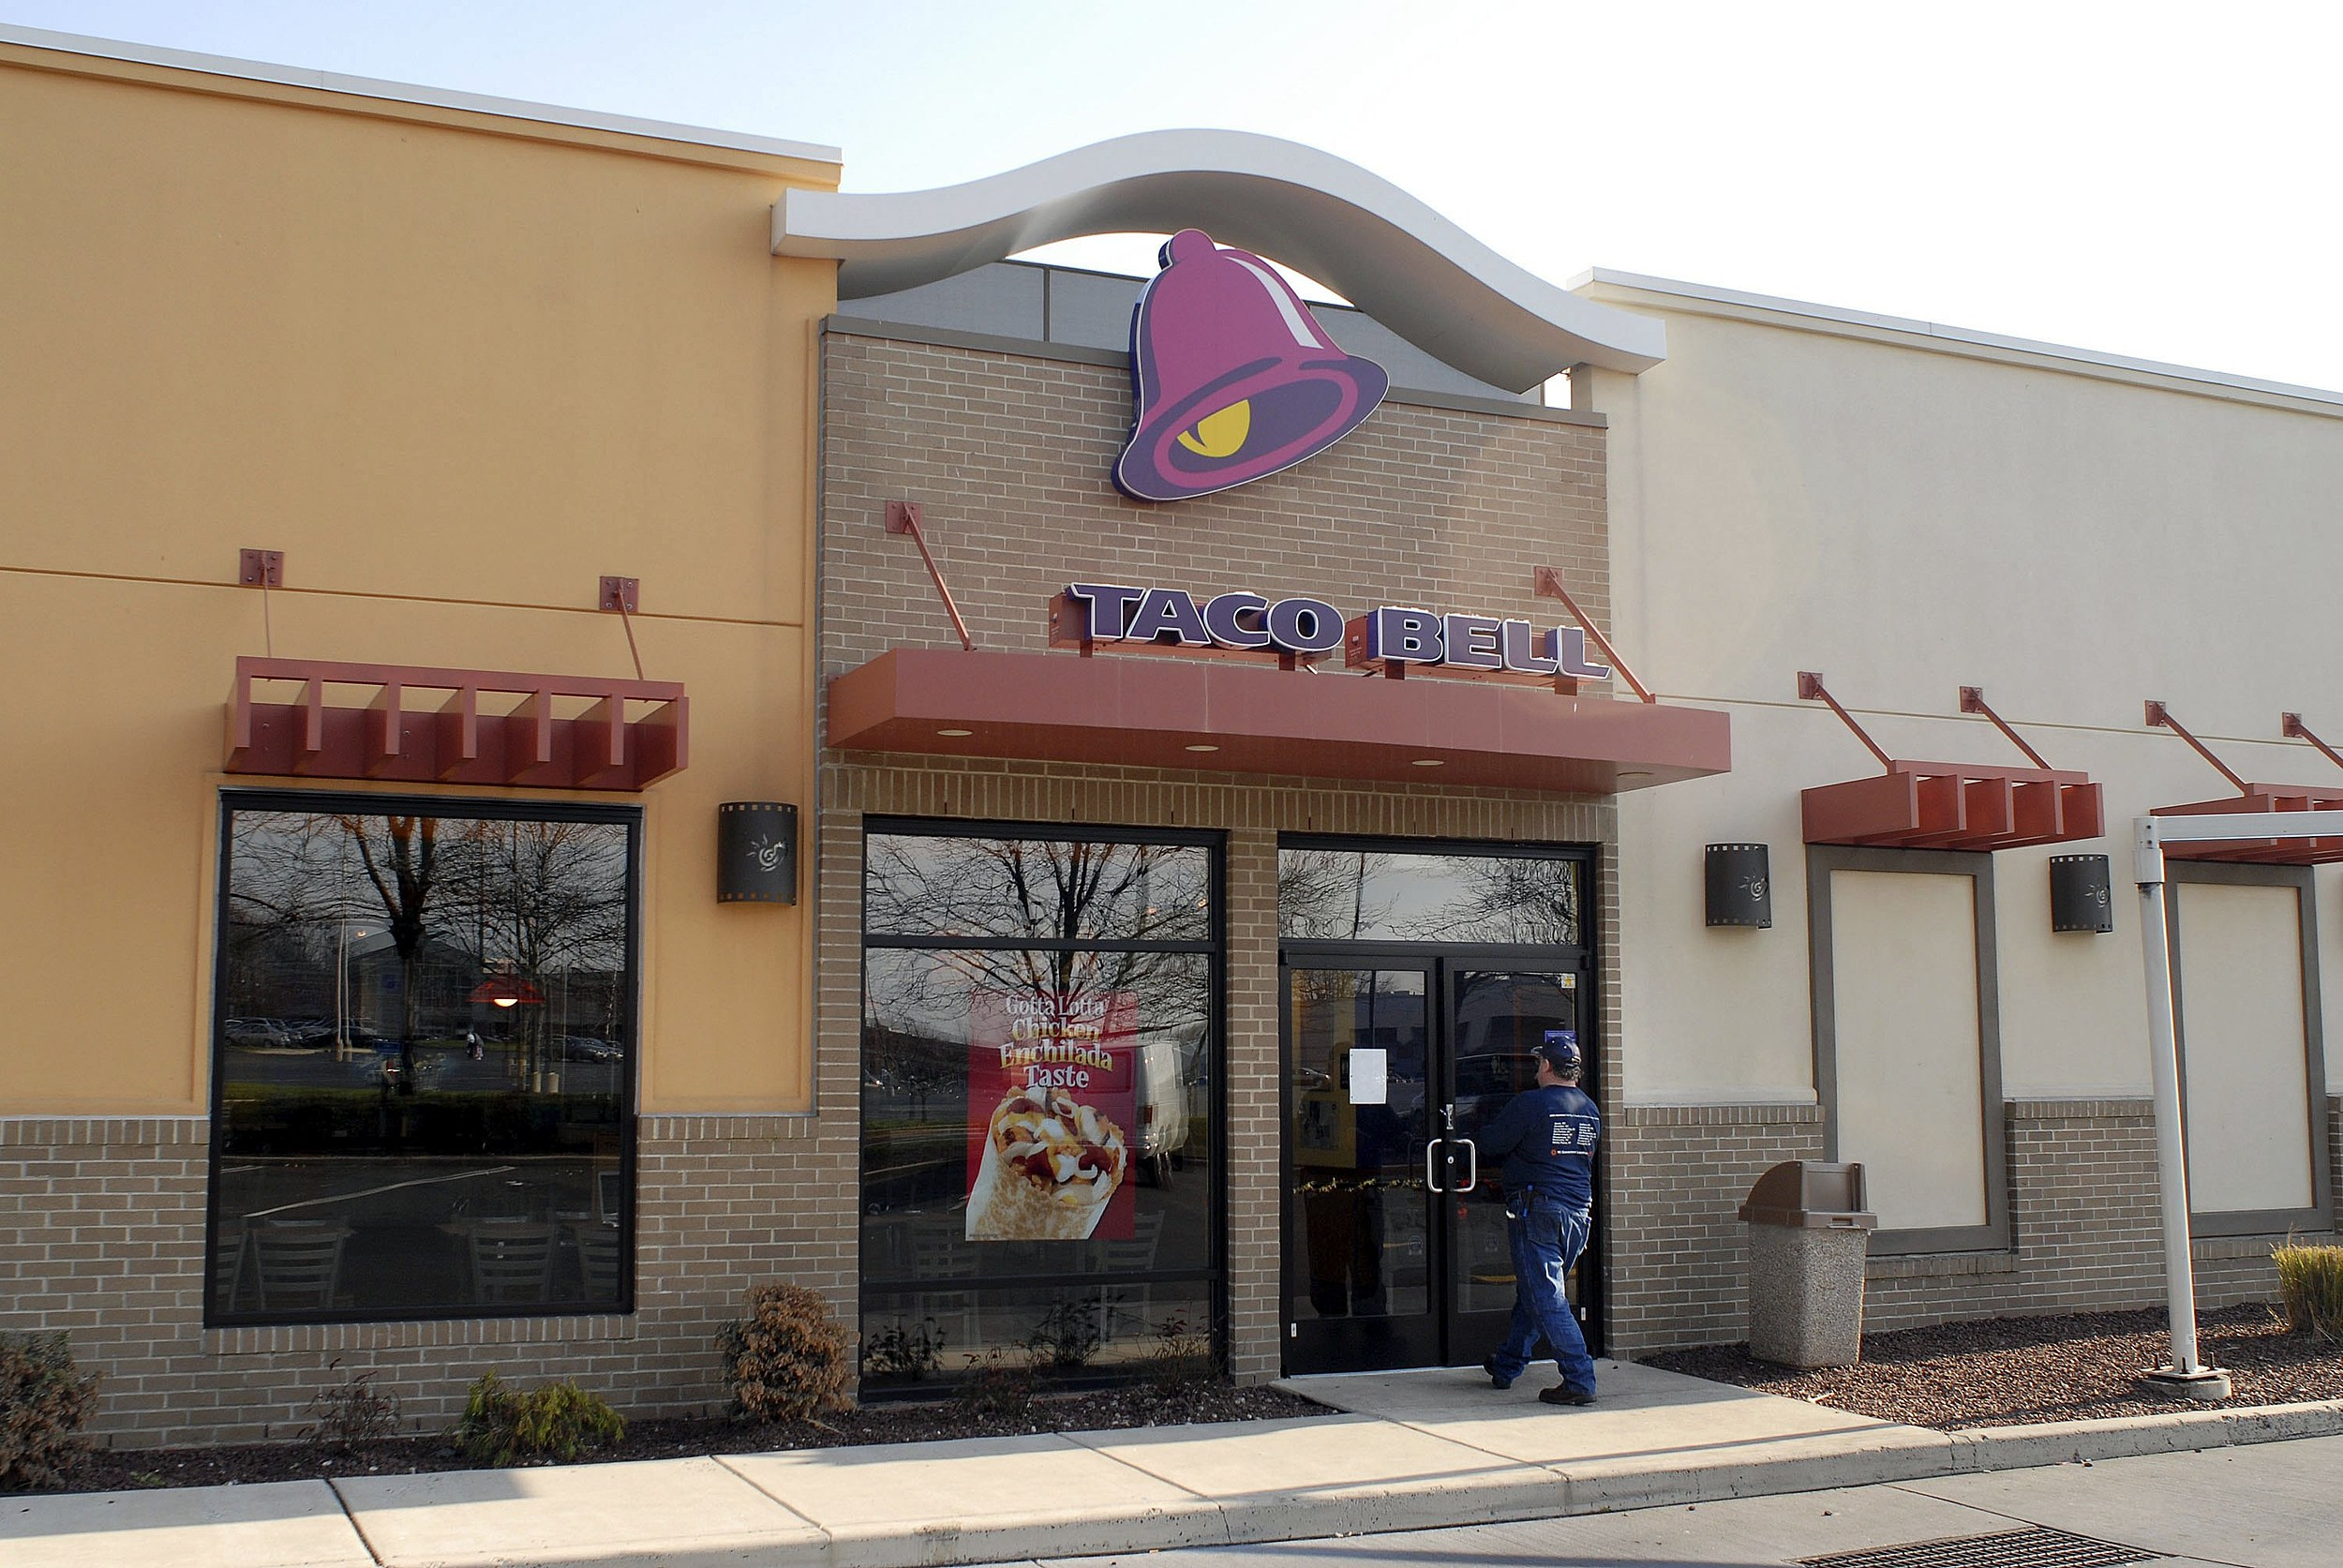 Philadelphia Area Taco Bell Restaurants Close Following E. Coli Warning